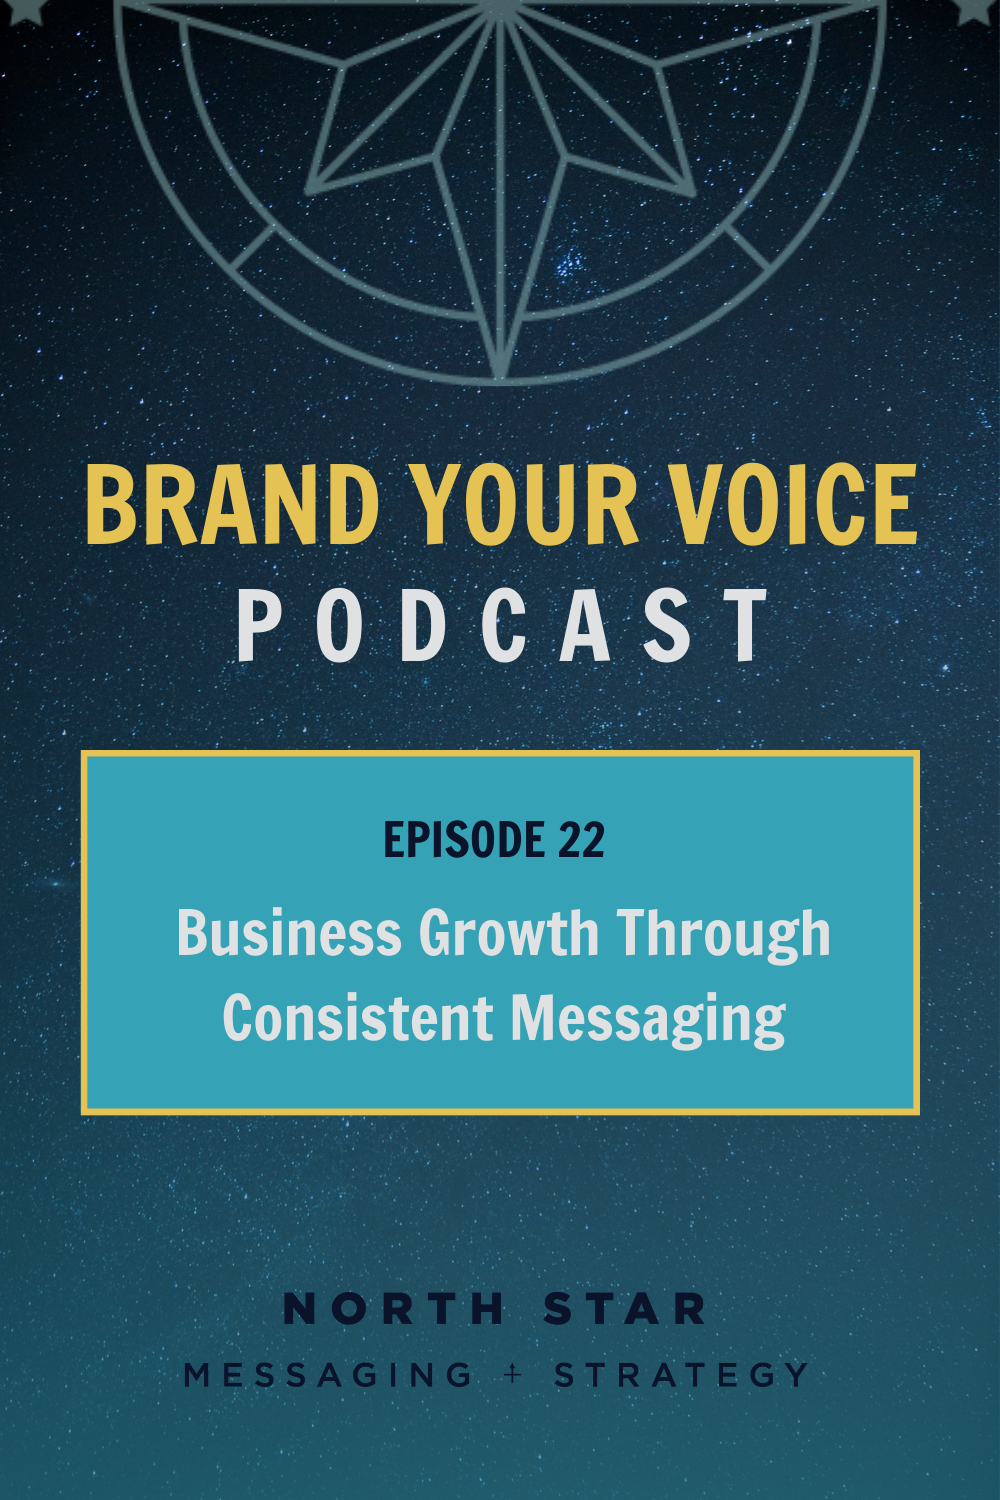 EPISODE 22: Business Growth through Consistent Messaging